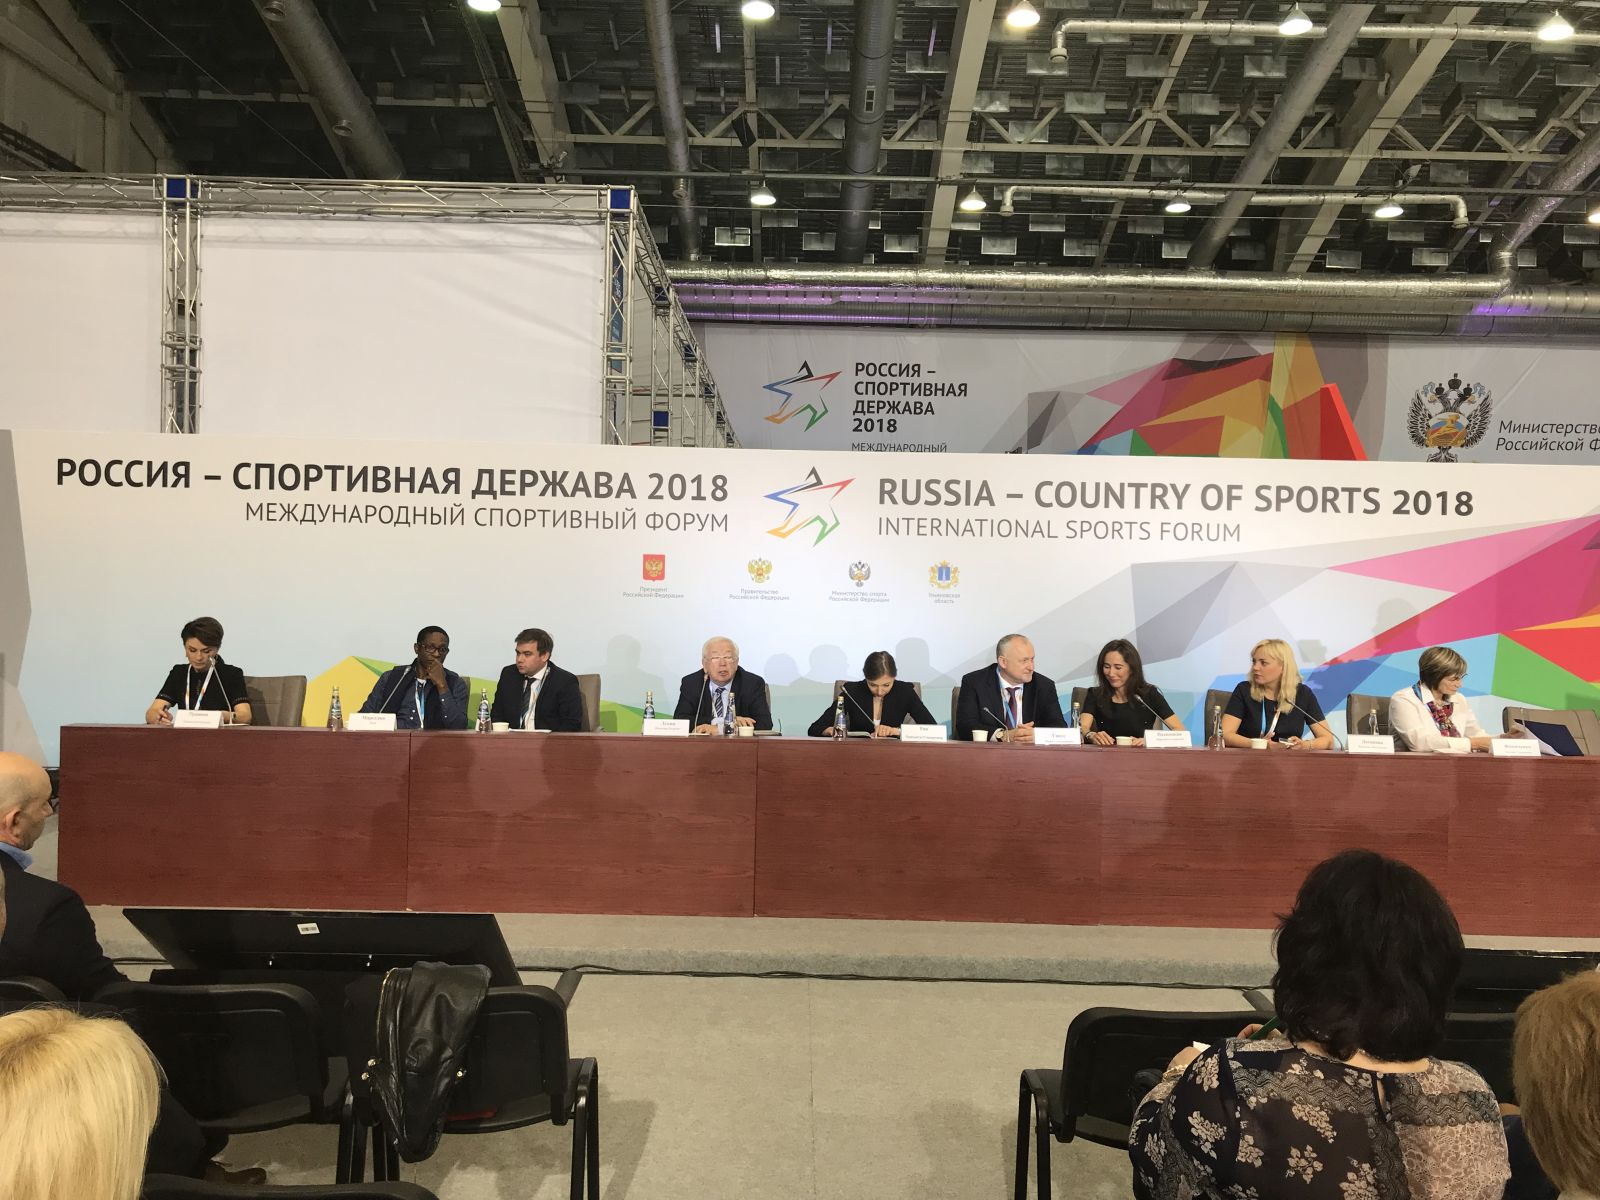 VLADIMIR LUKIN AND PAVEL ROZKHOV PARTICIPATED AT THE «ANTI-DOPING POLICY IN RUSSIA AND IN THE WORLD: KEY ISSUES AND INNOVATIVE APPROACHES IN FIGHT AGAINST DOPING» CONFERENCE